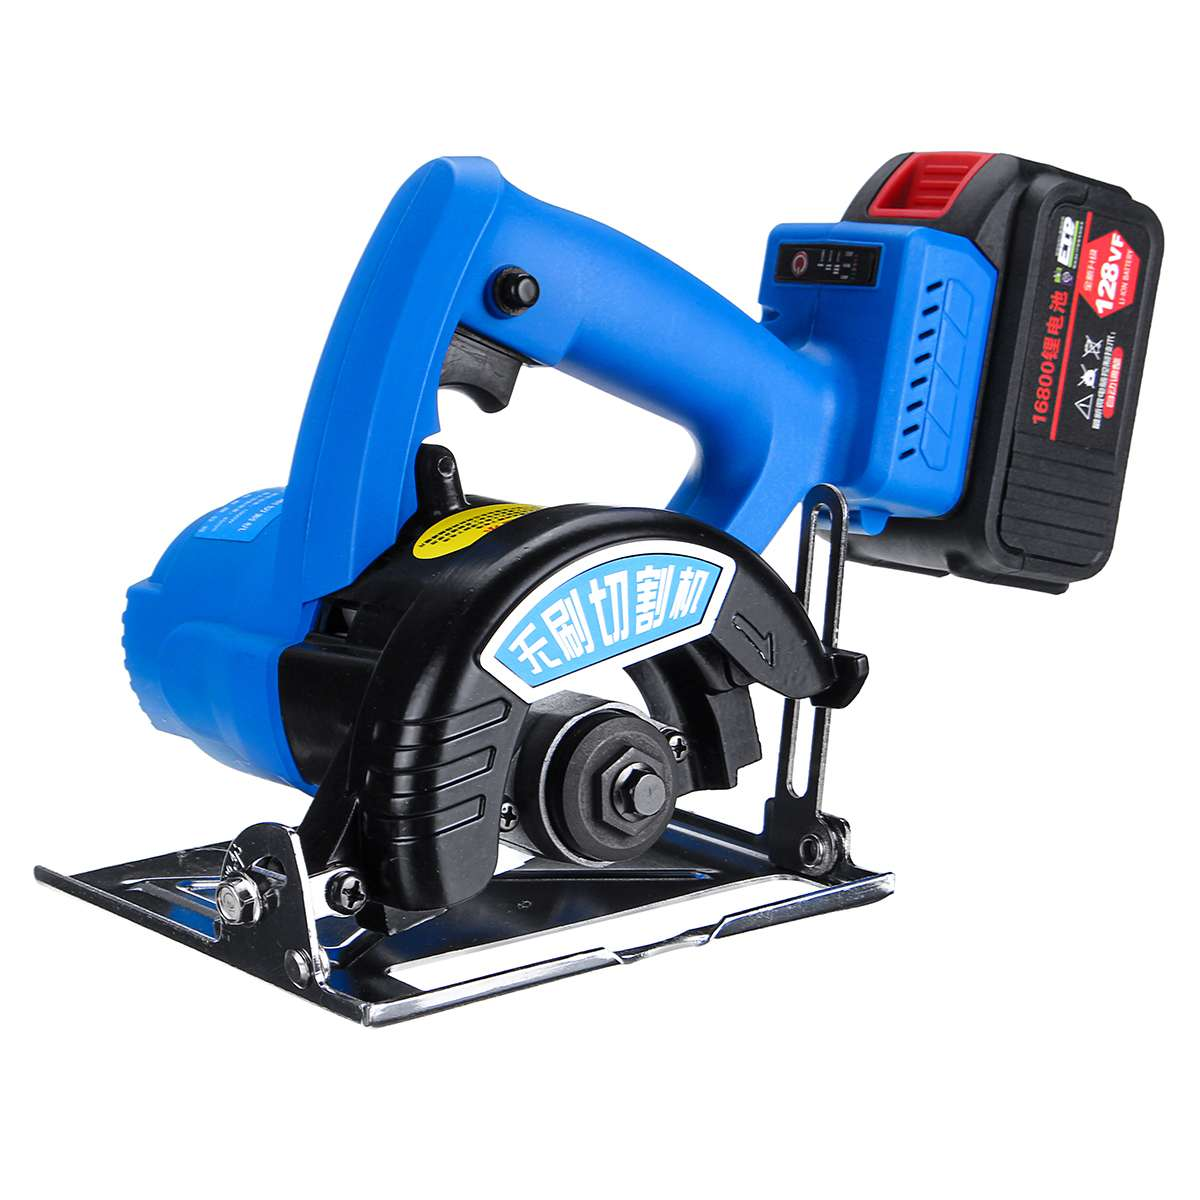 128VF 1000W Tile Cutting Machine Electric Circular Saw Brushless 125mm Blade Cordless Saw Woodworking Tools Rechargeable Power